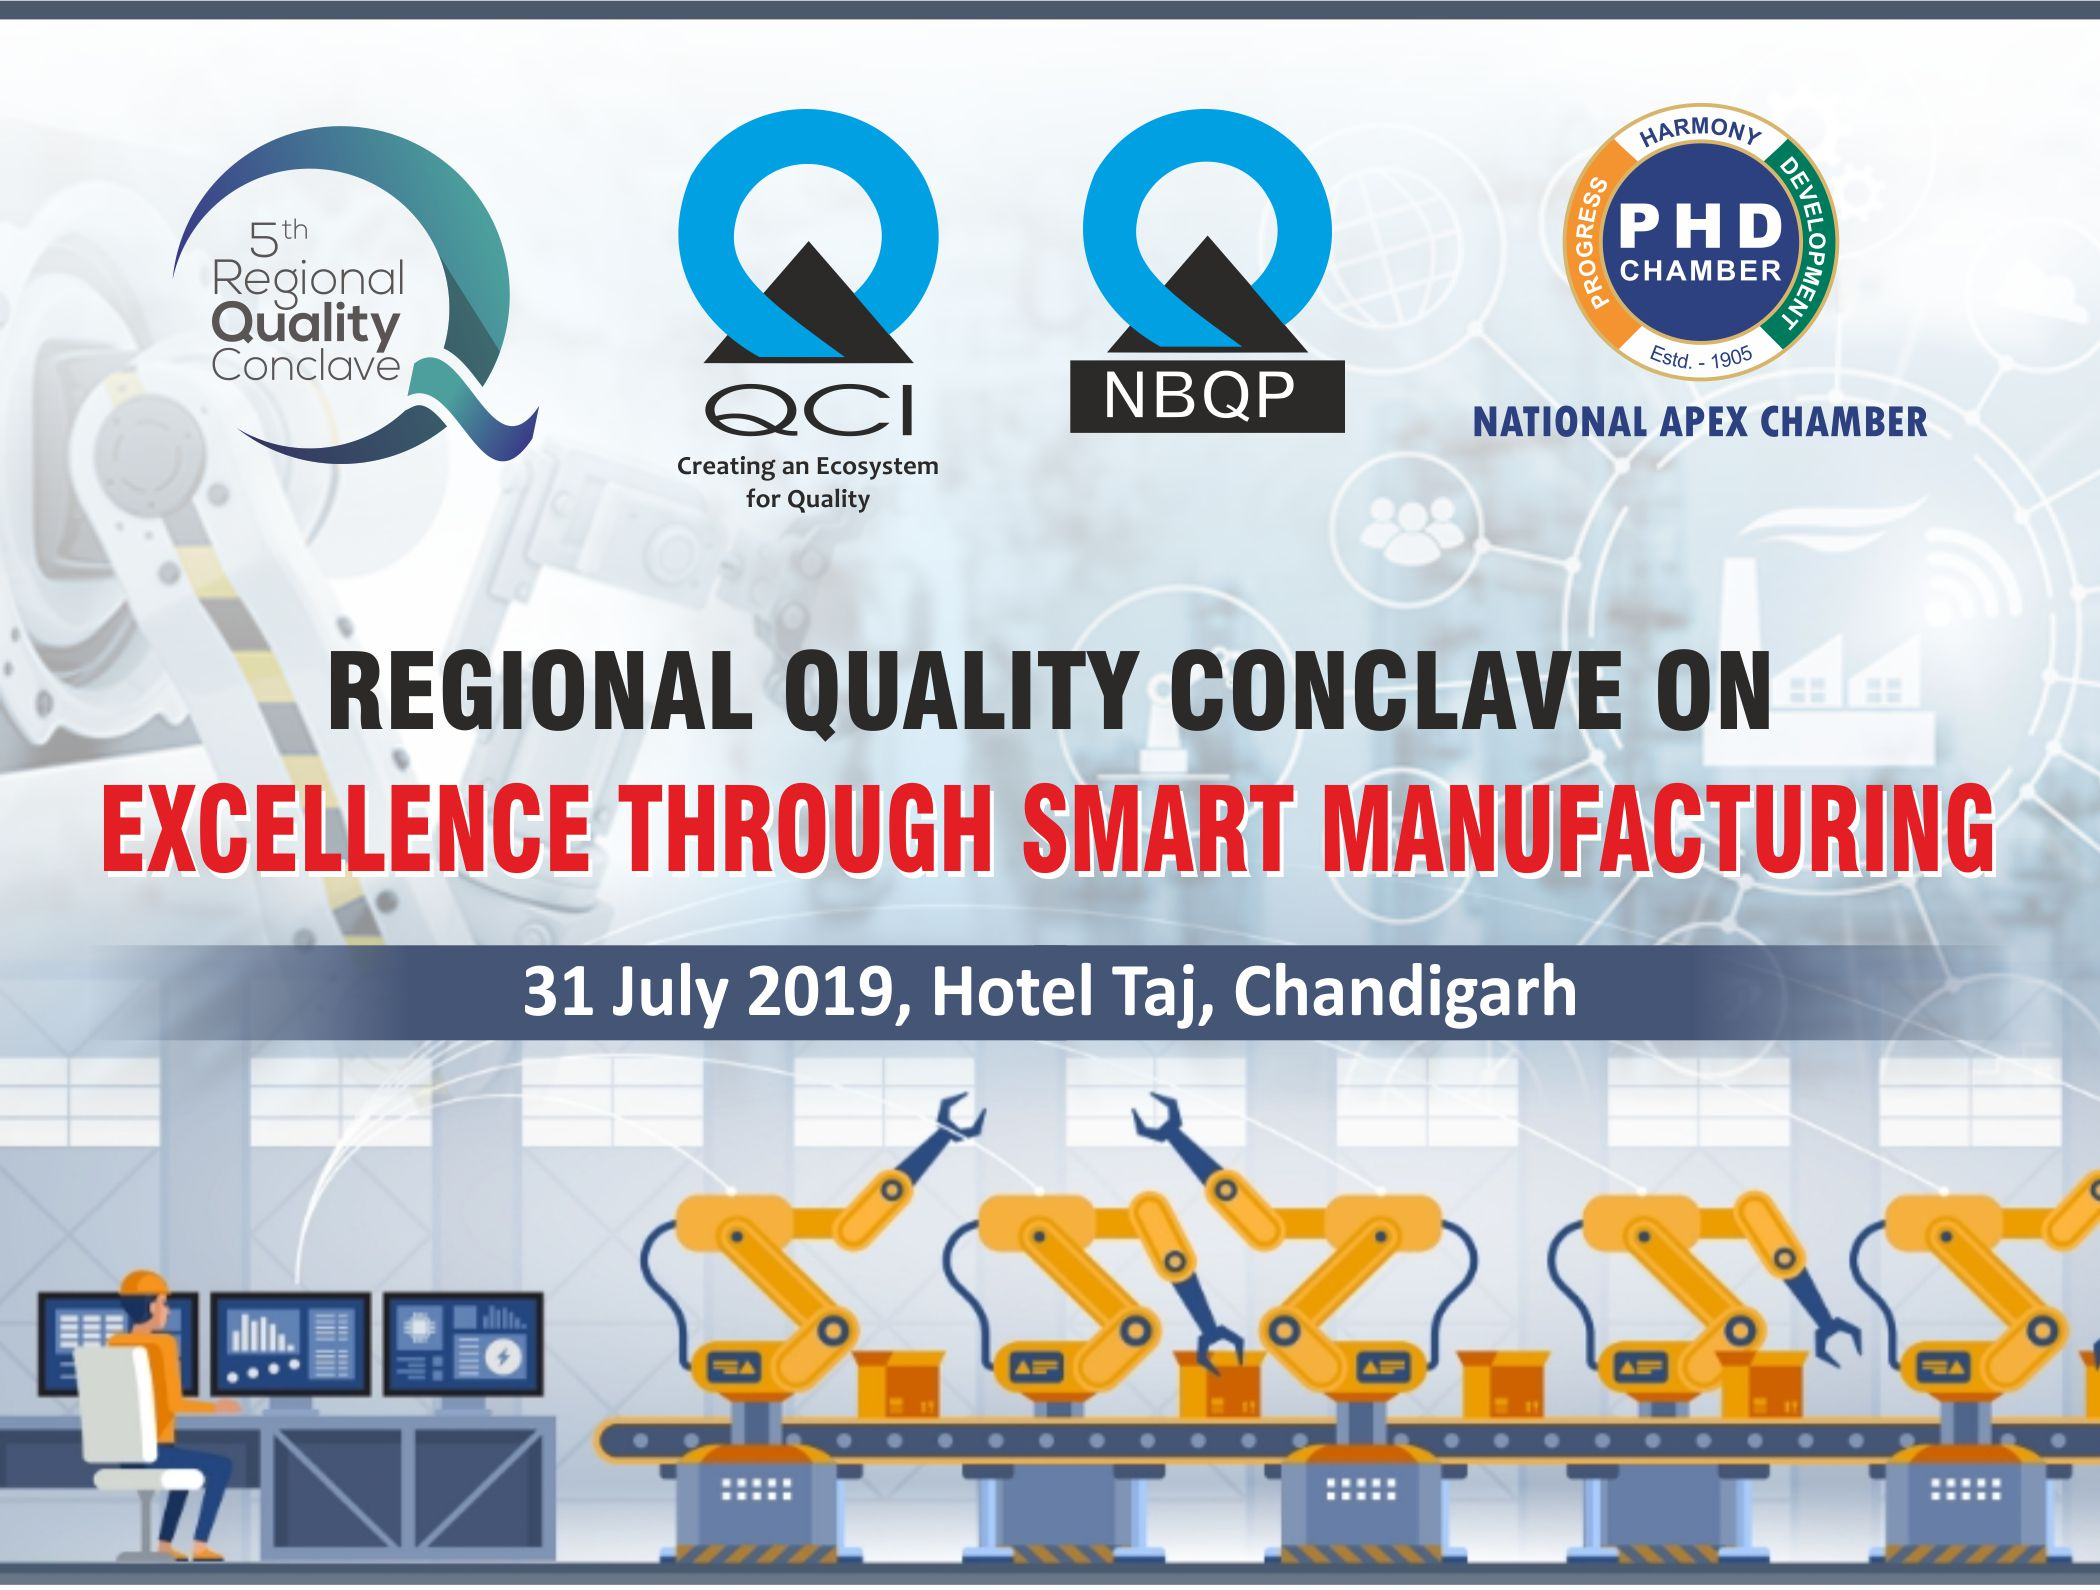 5th Regional Quality Conclave on Excellence through Smart Manufacturing